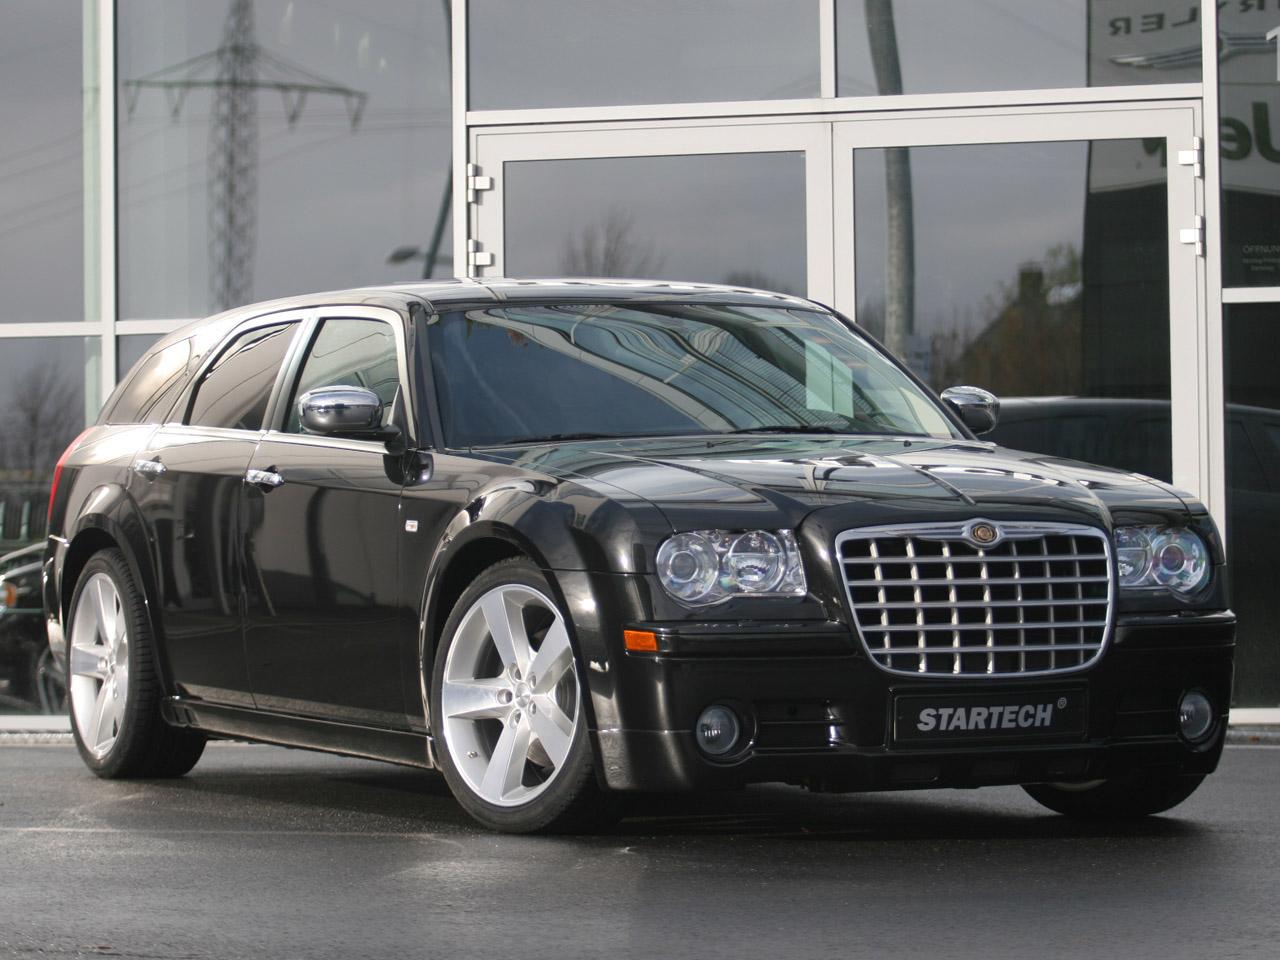 Startech Chrysler 300C photo 27376